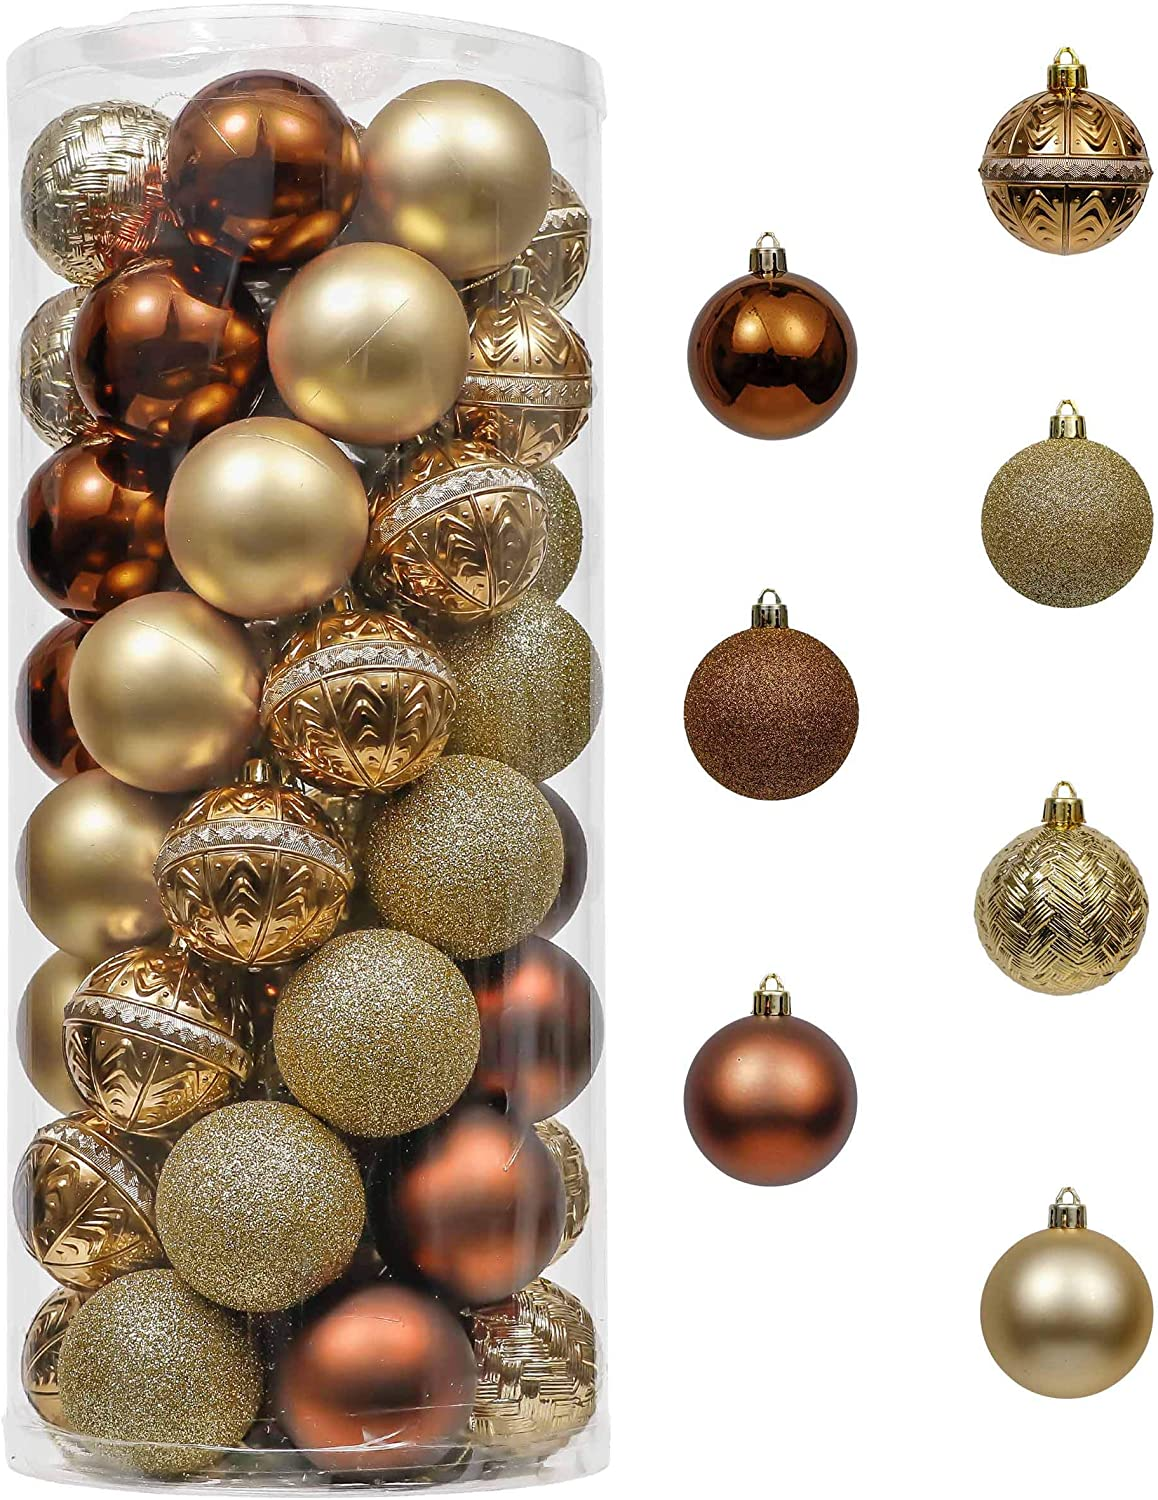 Amazon Com Valery Madelyn 50ct 60mm Woodland Copper Gold Christmas Ball Ornaments Shatterproof Christmas Tree Ornaments Decoration Themed With Tree Skirt Not Included Furniture Decor